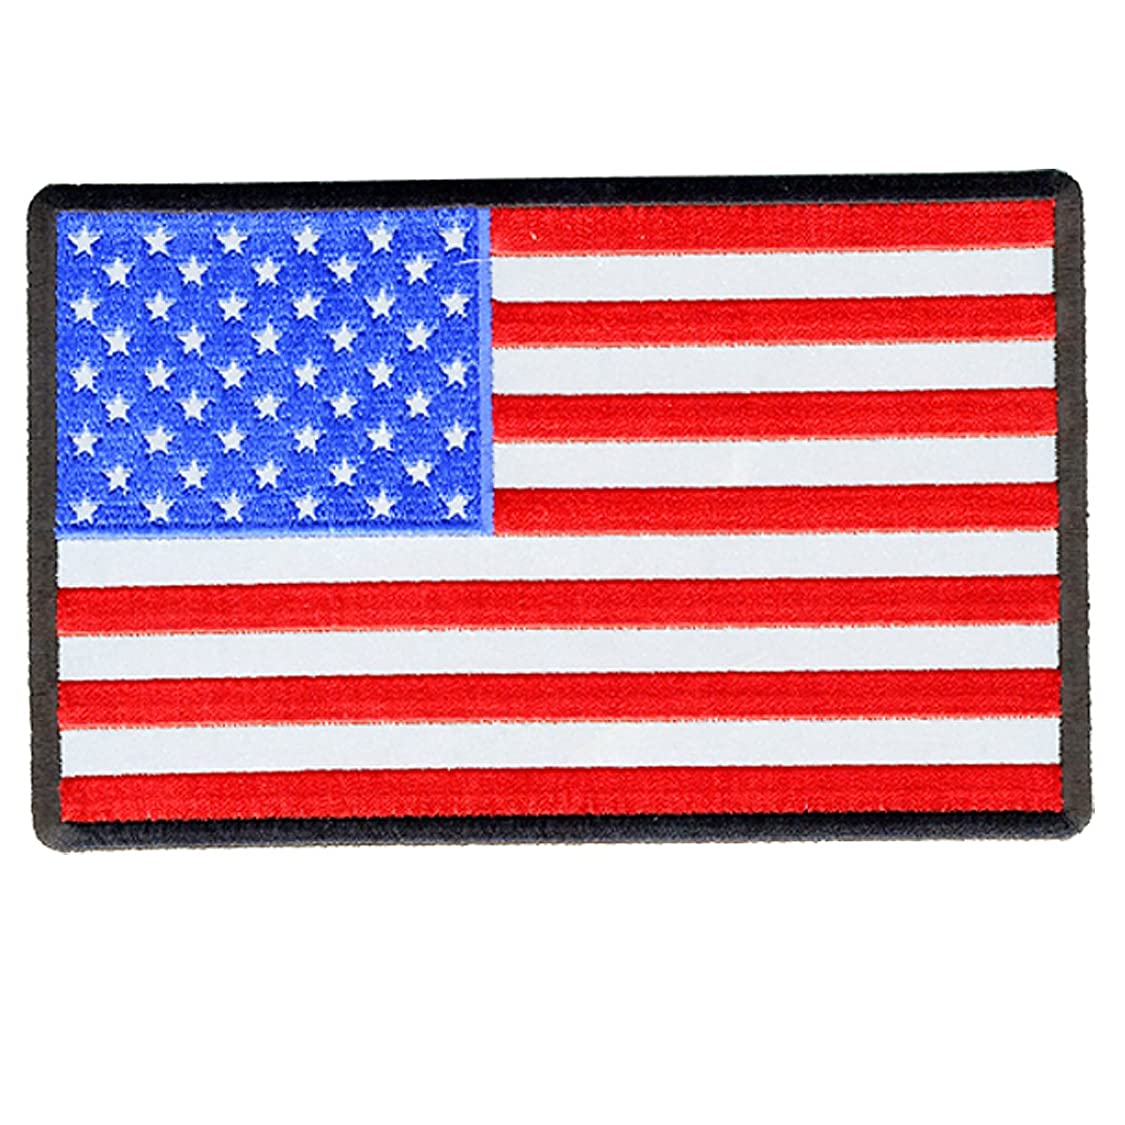 Hot Leathers American Flag Reflective Patch (6